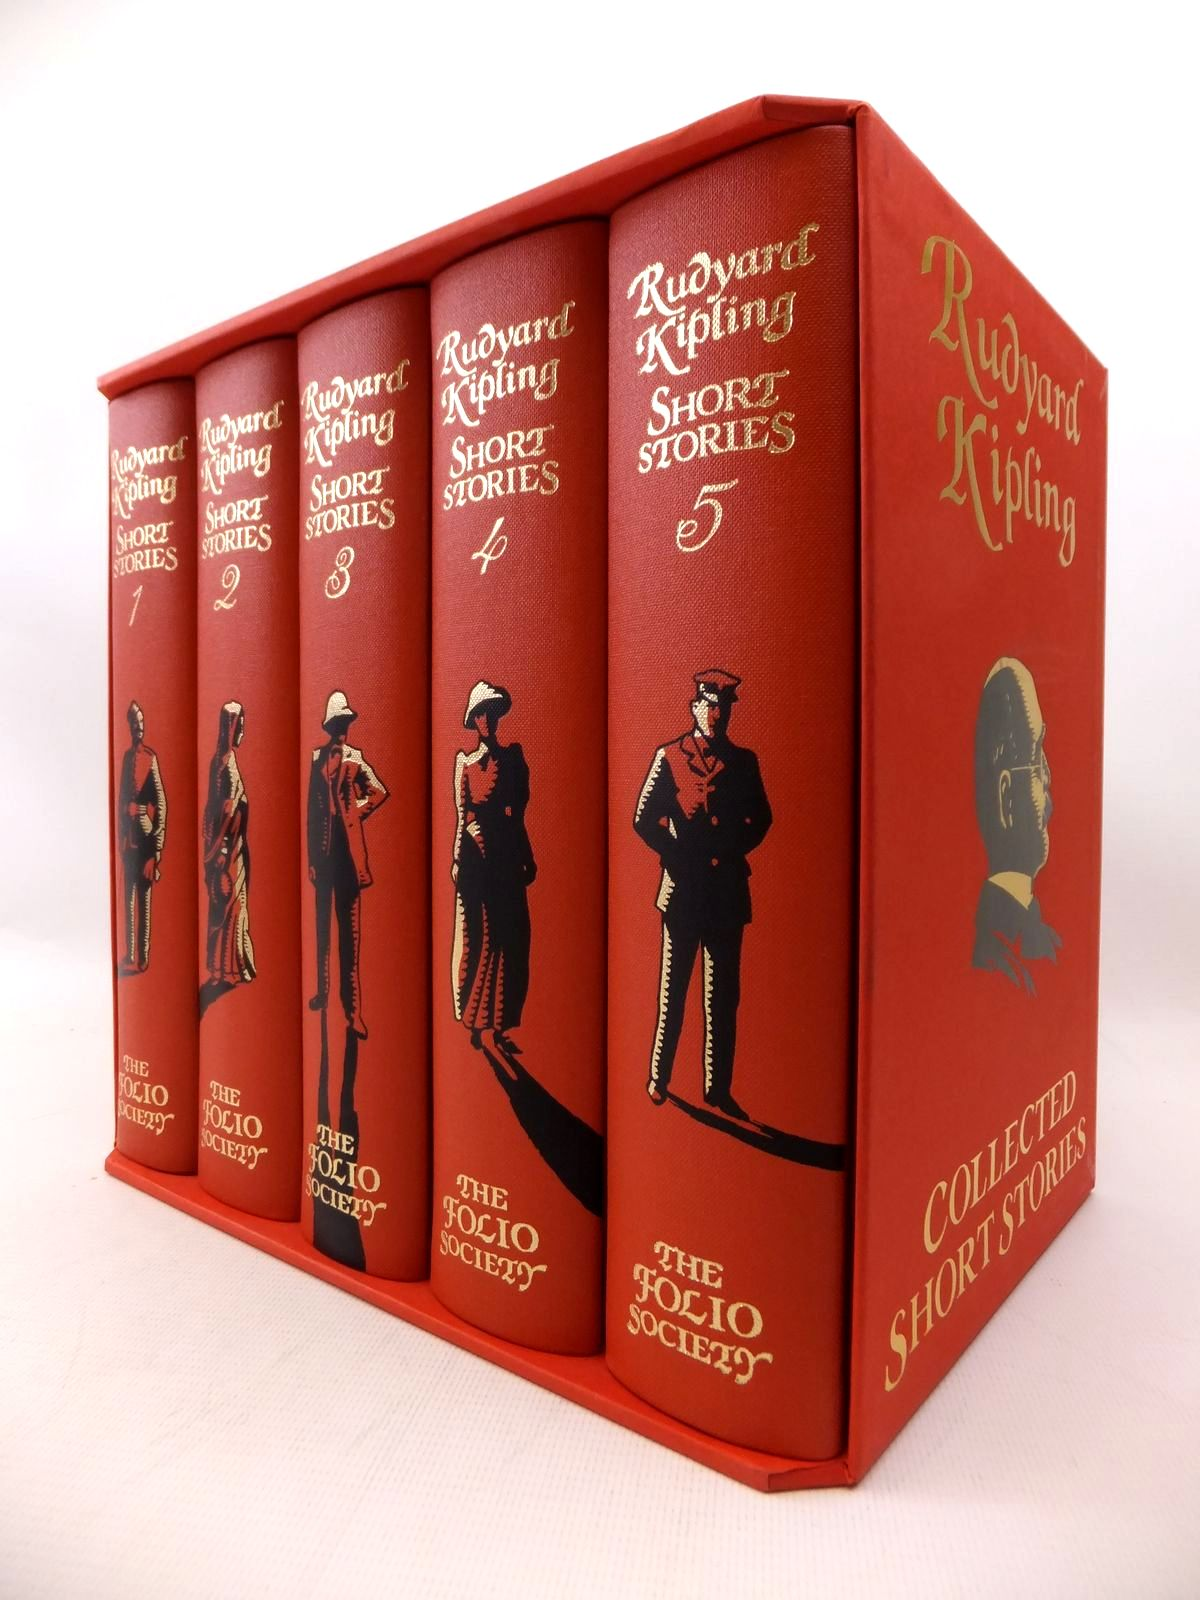 Photo of RUDYARD KIPLING COLLECTED SHORT STORIES (5 VOLUMES) written by Kipling, Rudyard illustrated by Bannister, Philip published by Folio Society (STOCK CODE: 1814035)  for sale by Stella & Rose's Books